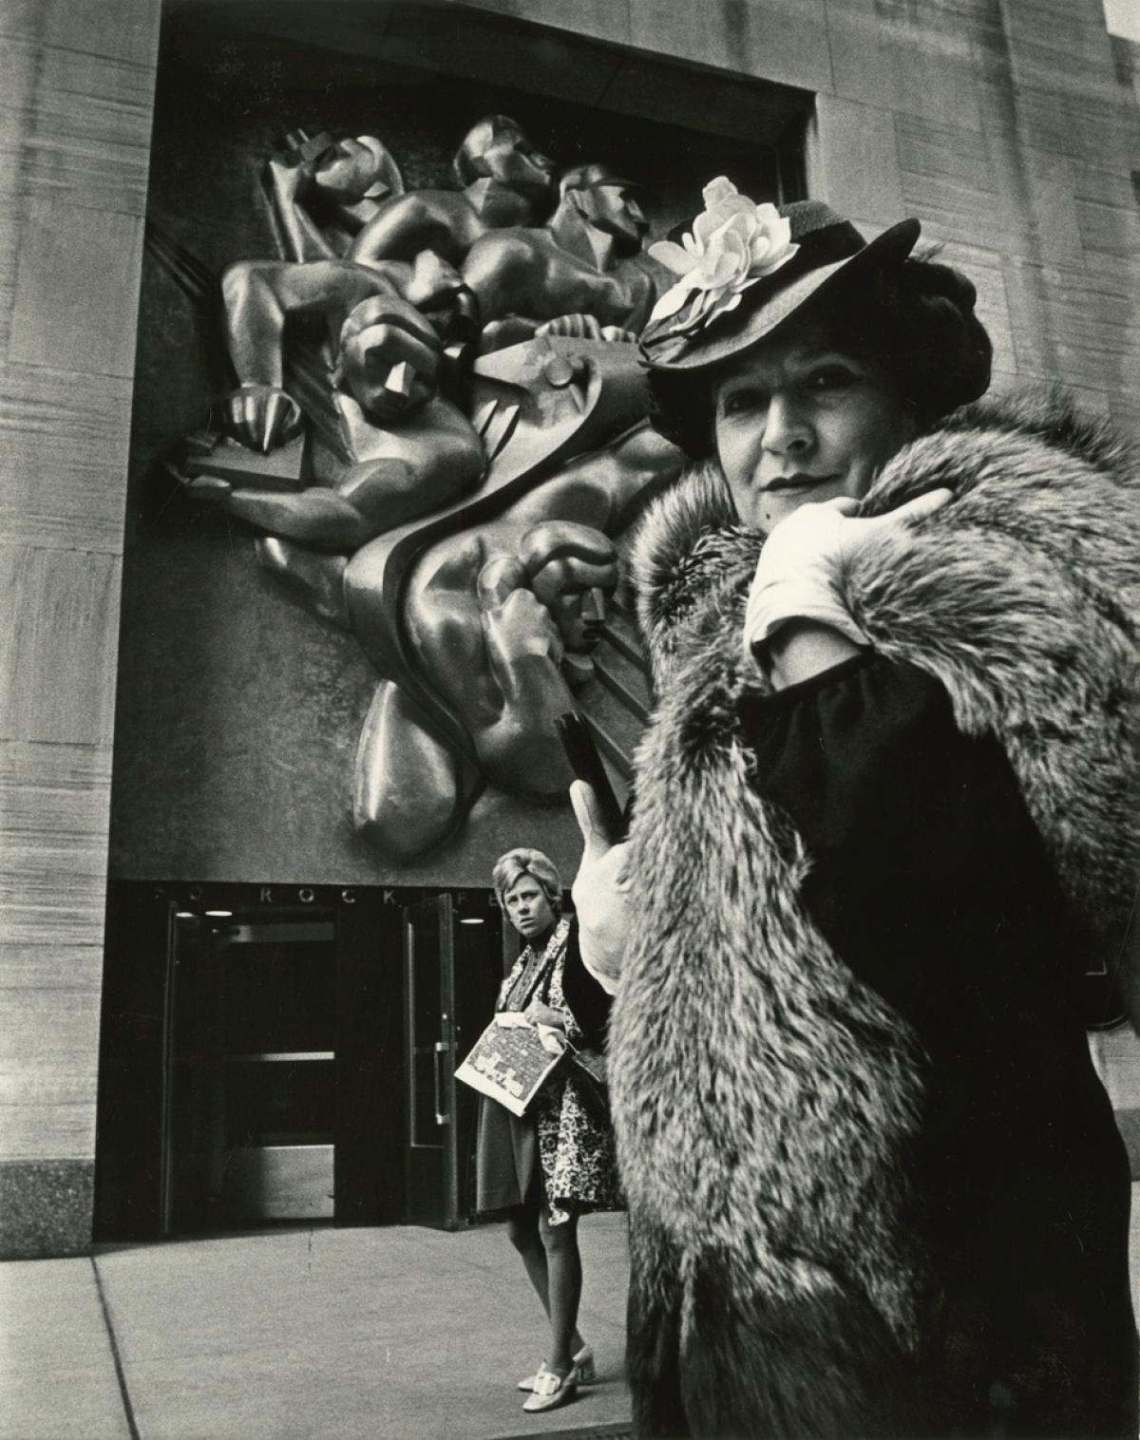 bill-cunningham-facades-exhibition